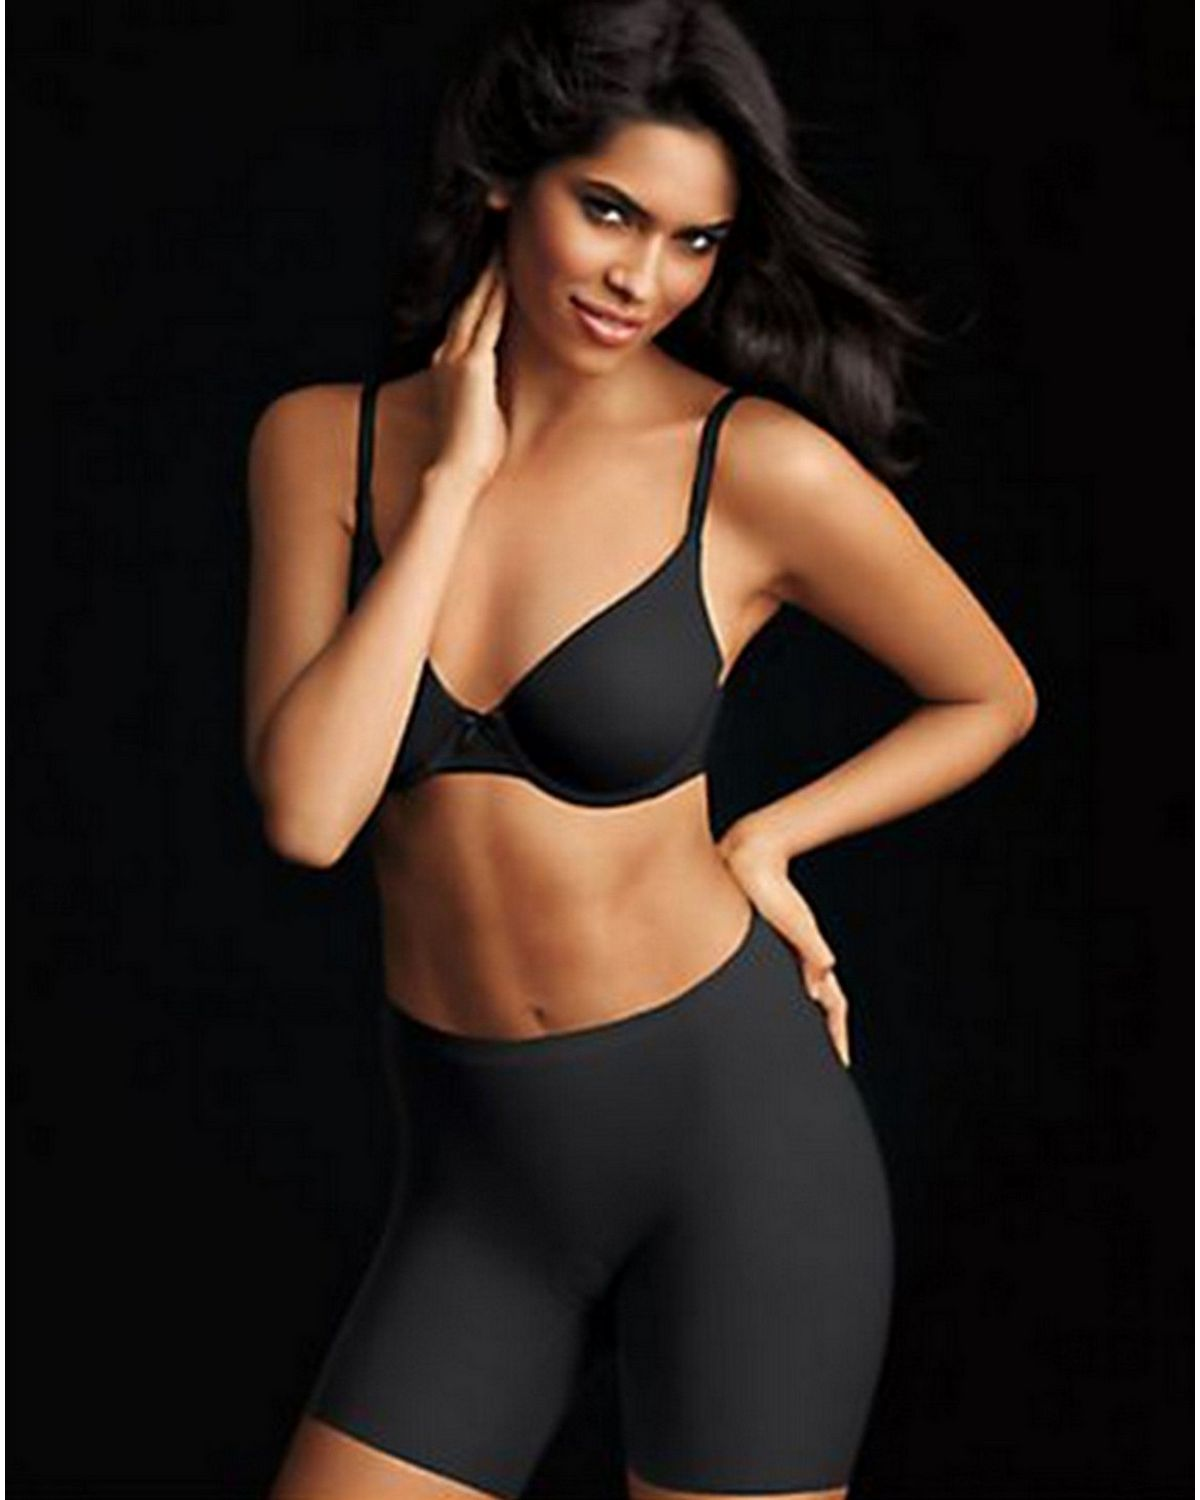 Maidenform 2060 Sleek Smoothers Shorty - Black - S 2060